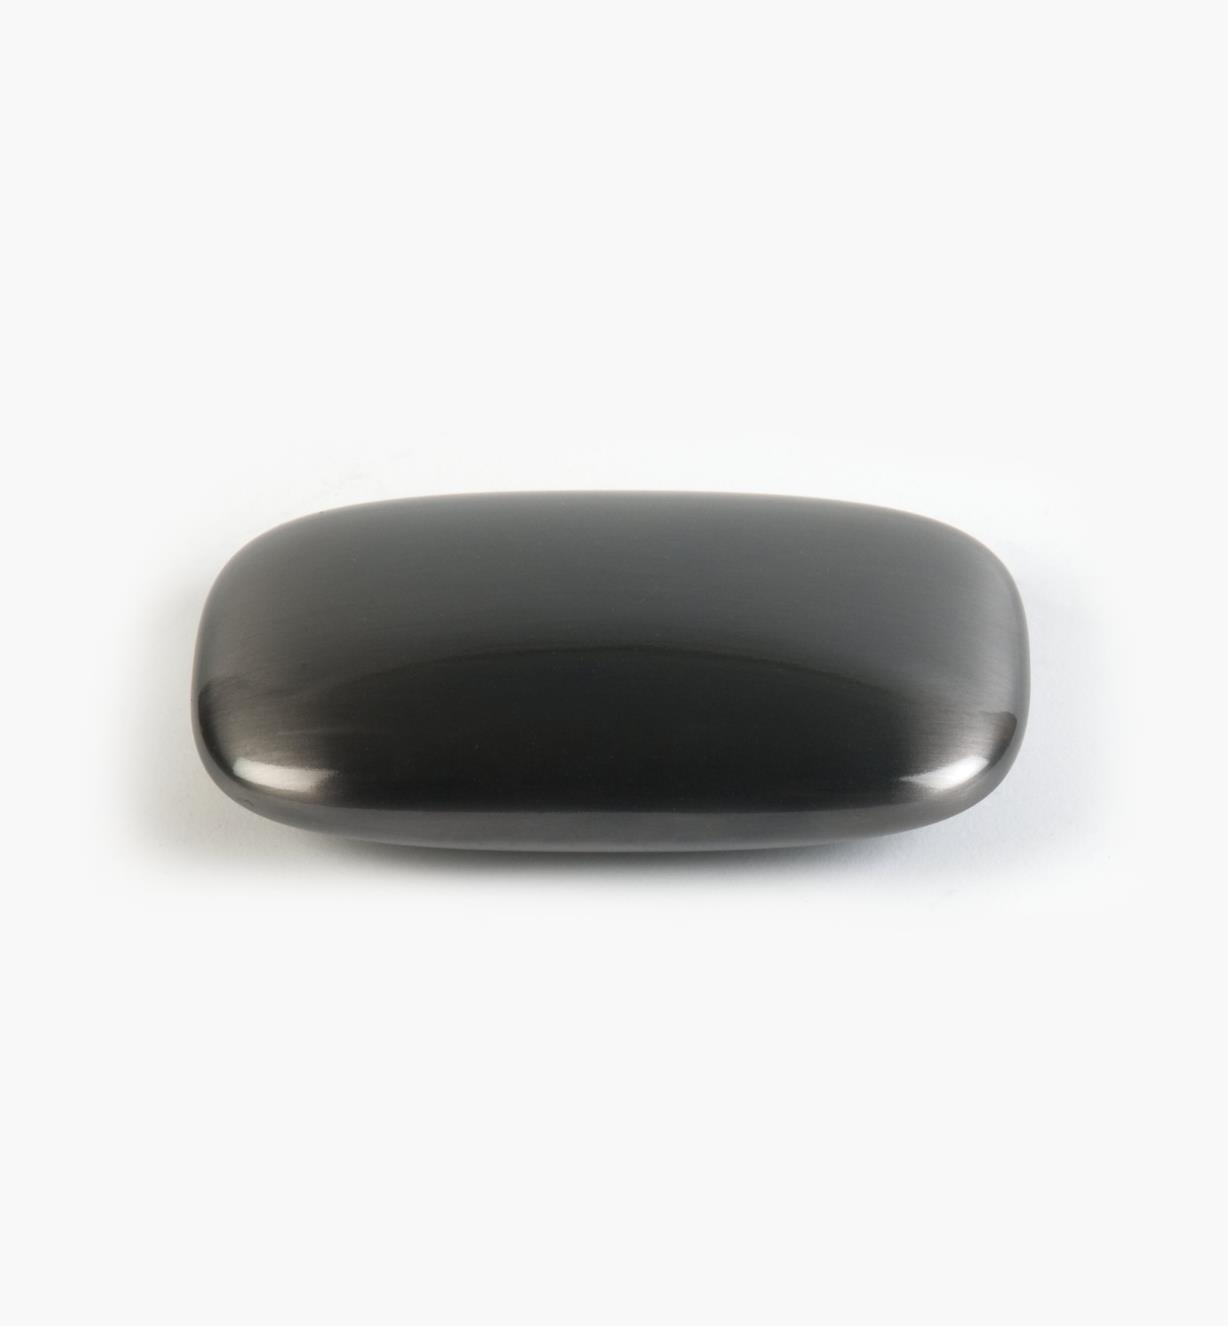 01G1622 - 64mm Rect. Black Nickel Stone Pull